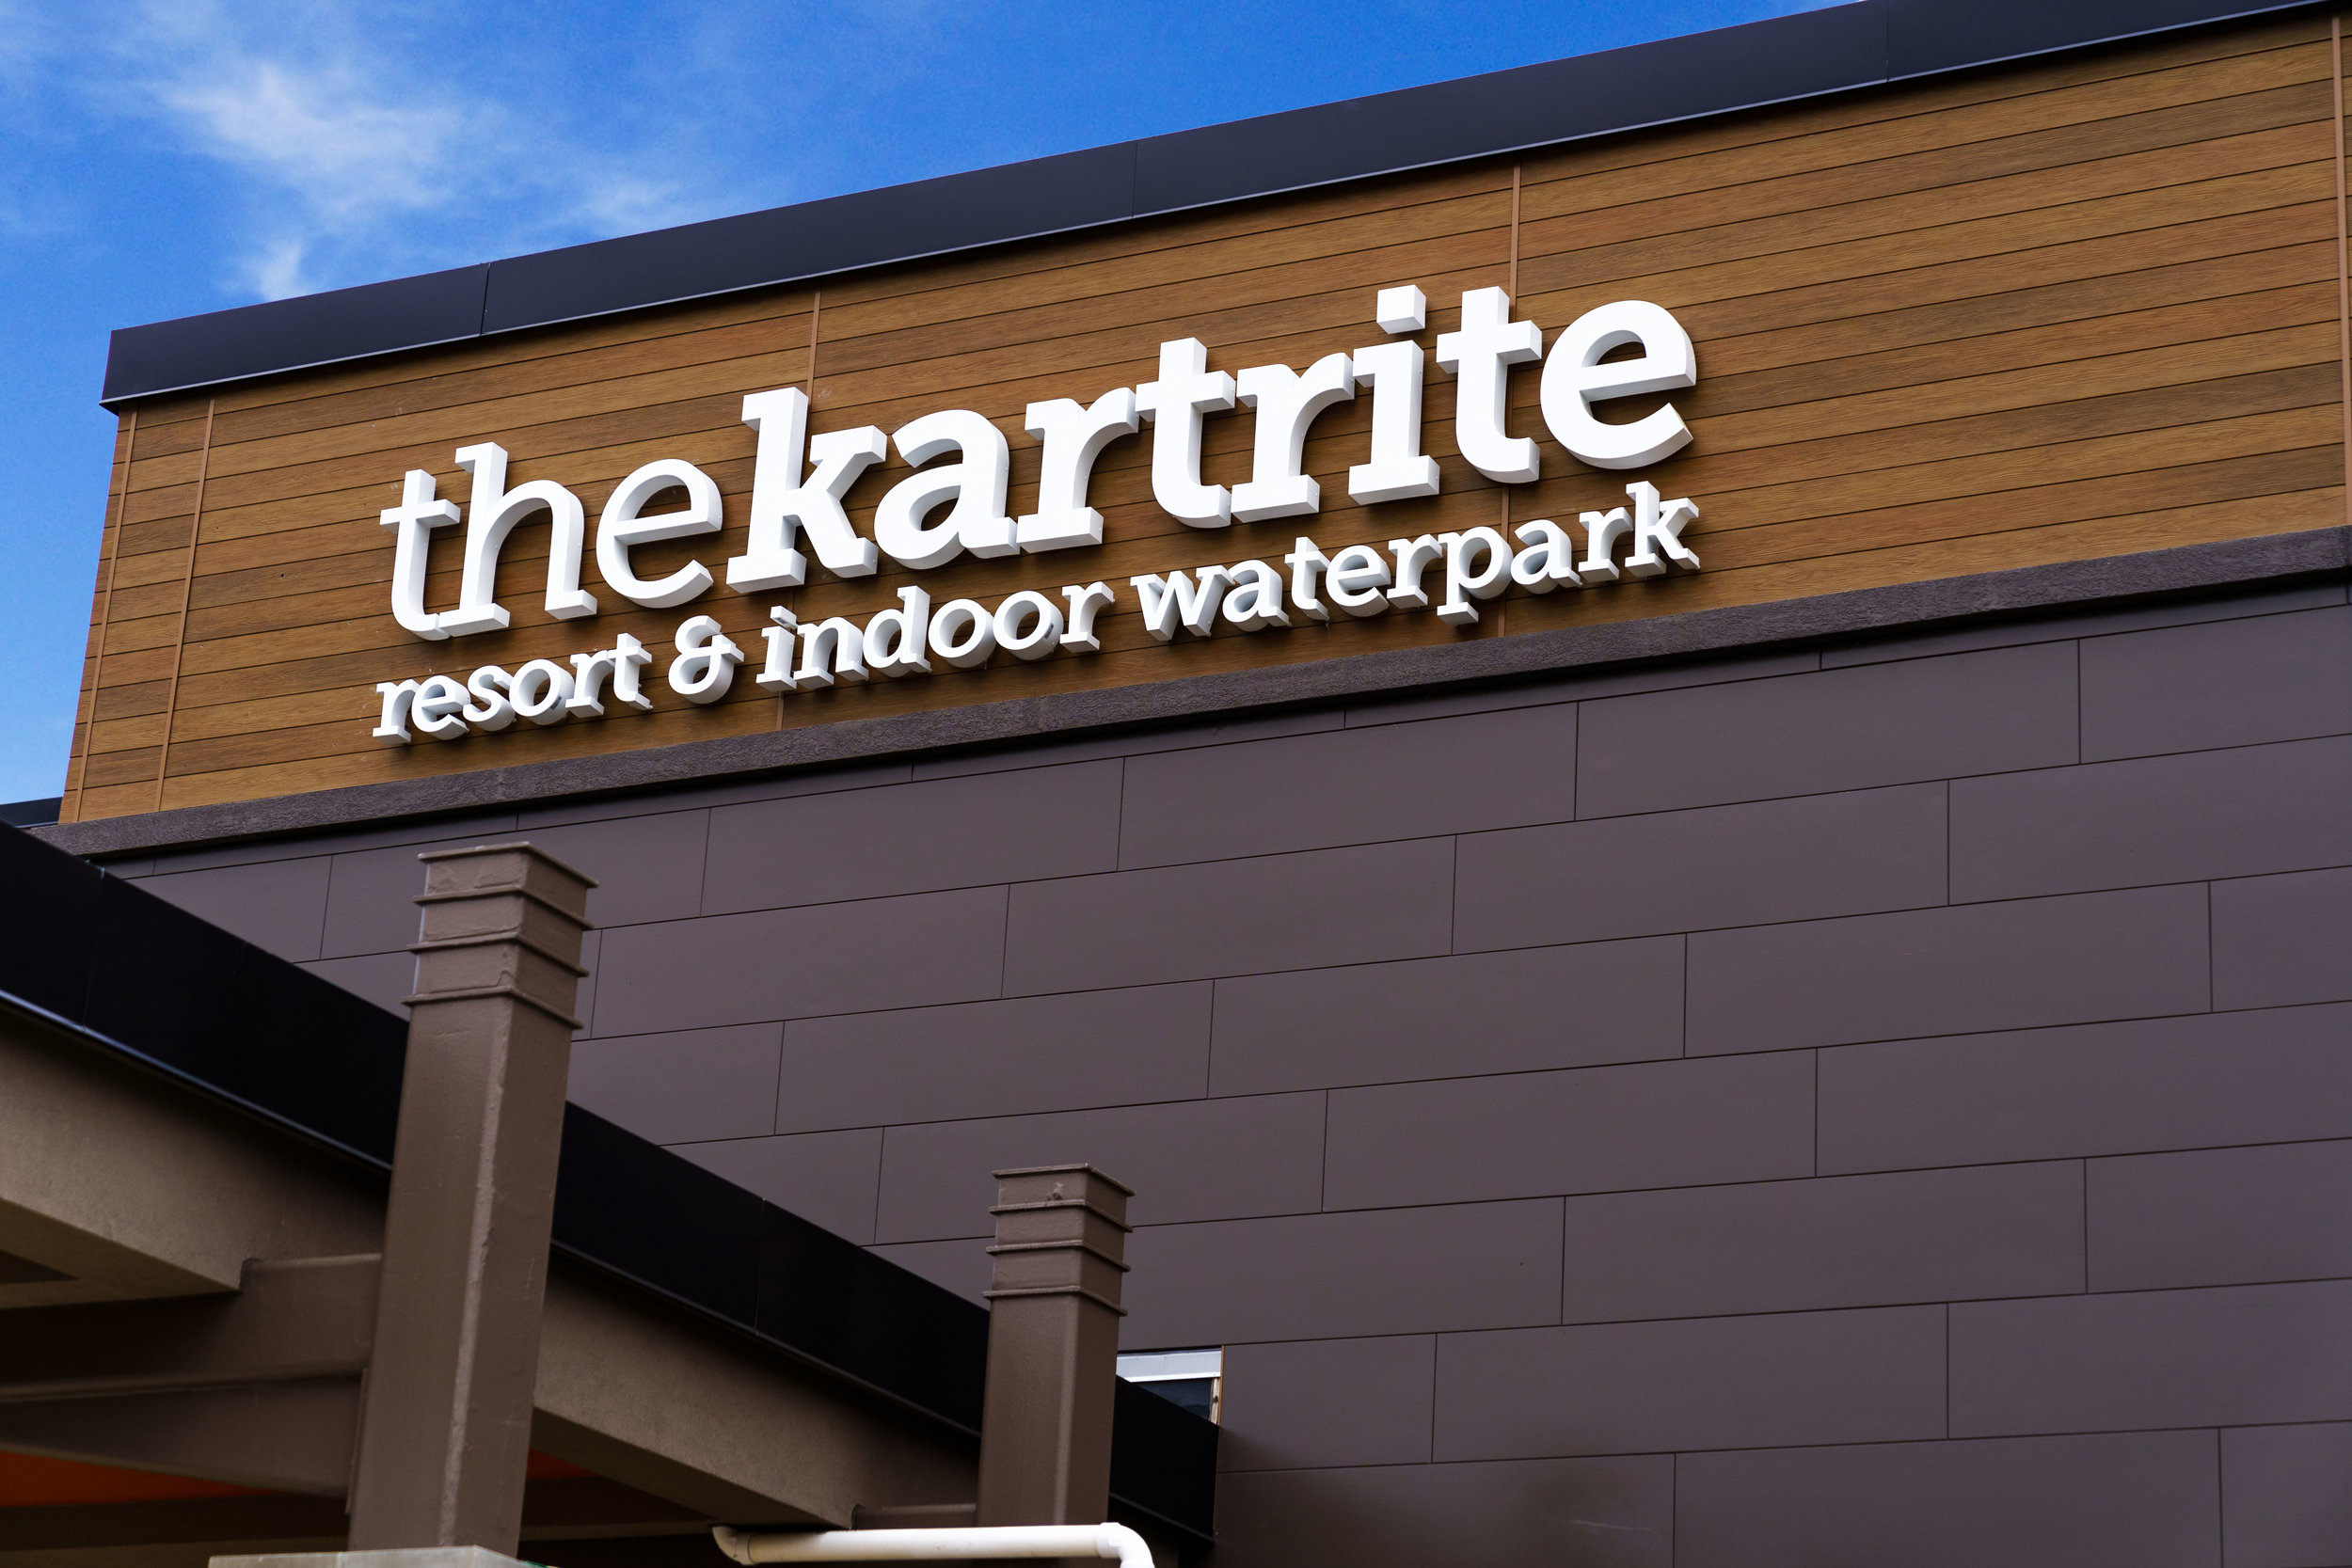 The Kartrite   The largest indoor waterpark in New York   Check it out